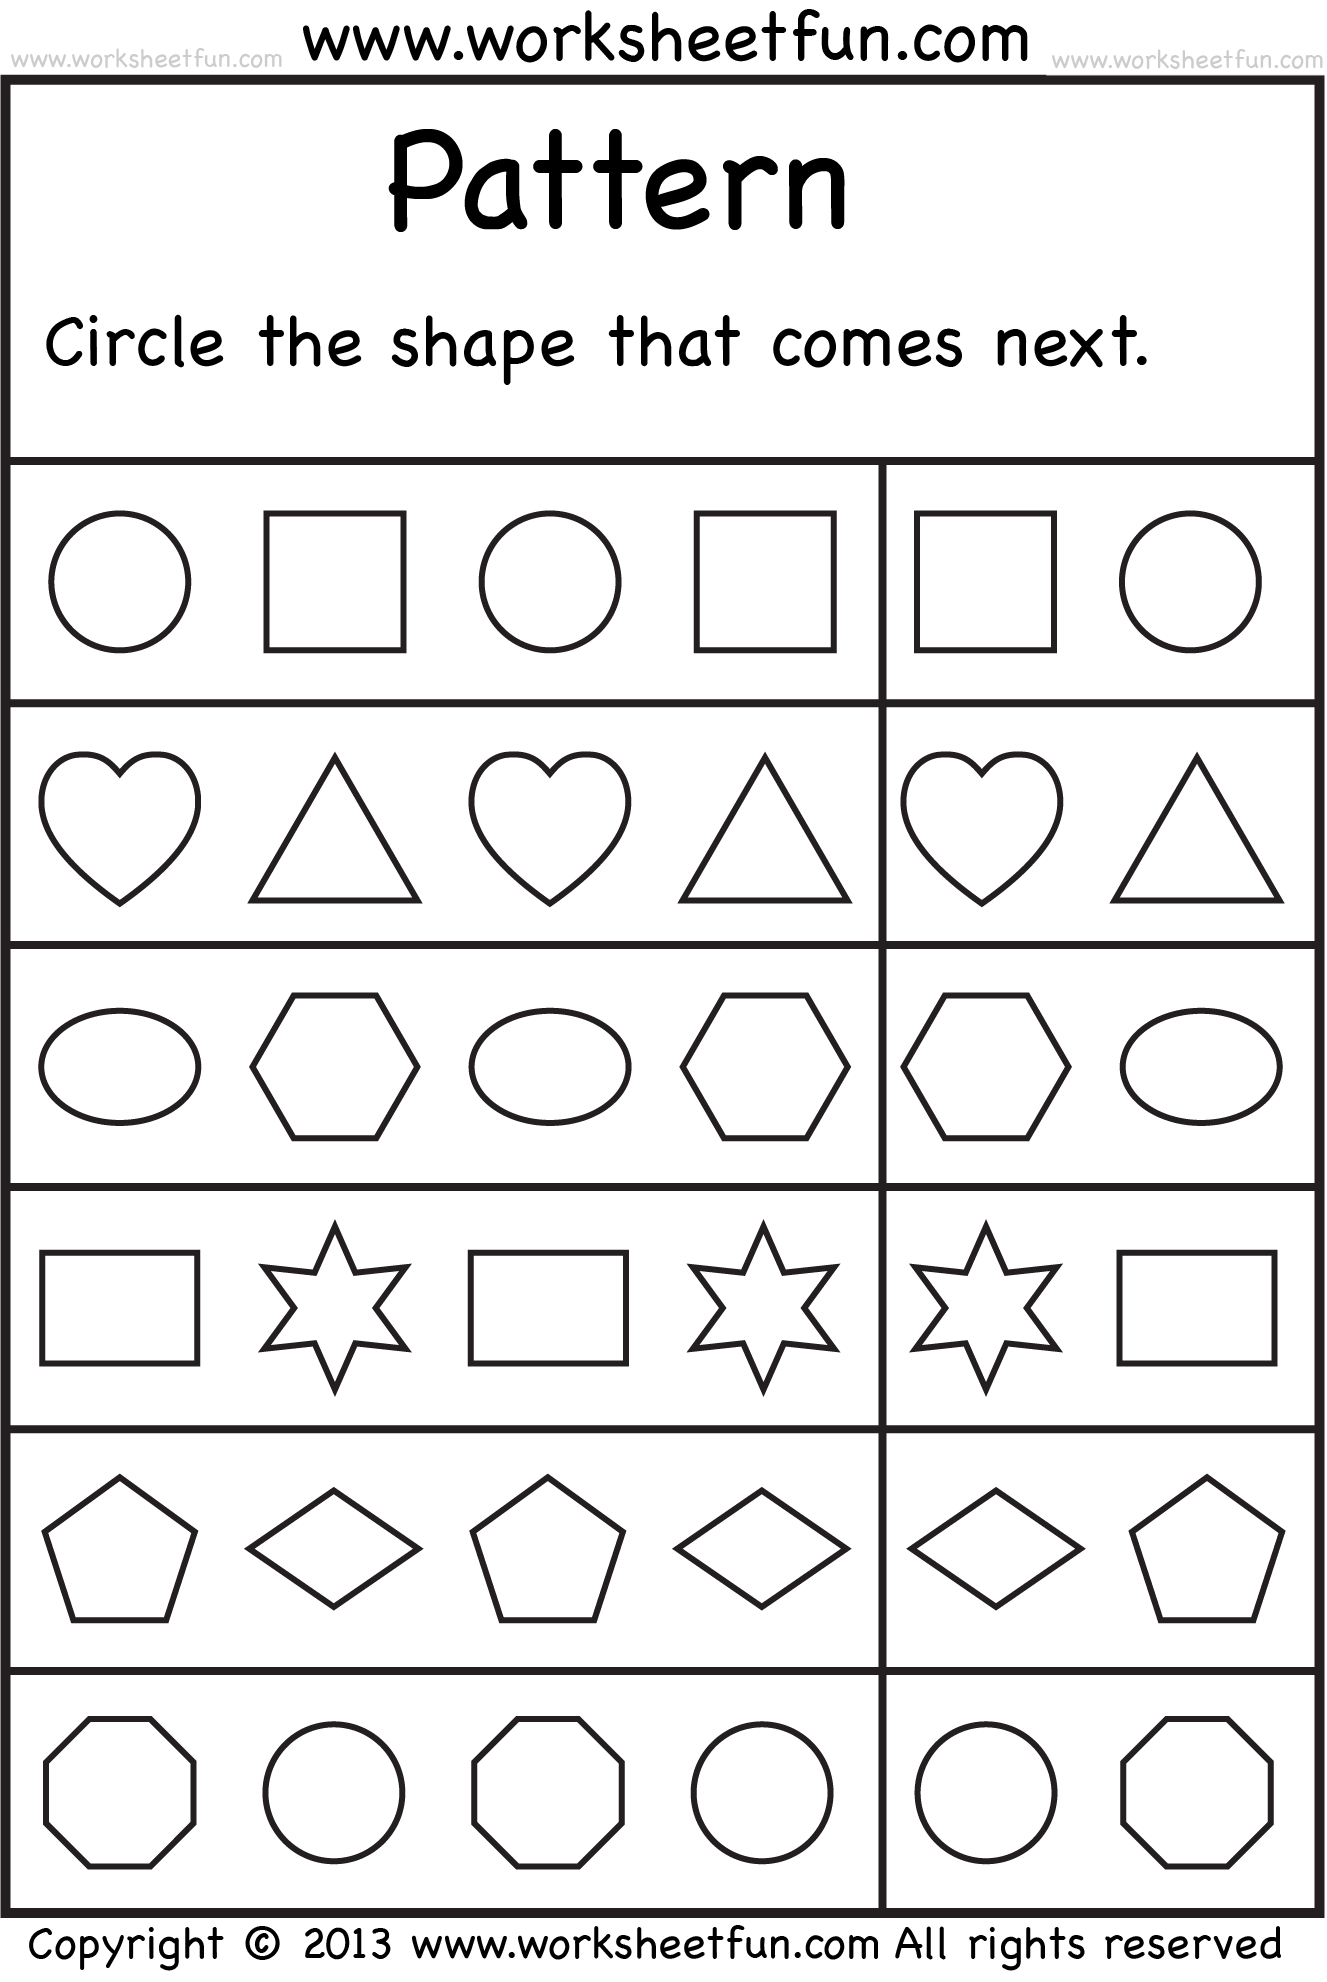 Weirdmailus  Unique  Images About School Worksheets On Pinterest  Number Words  With Excellent  Images About School Worksheets On Pinterest  Number Words Alphabet Worksheets And Free Printable Kindergarten Worksheets With Lovely Publication  Worksheet  Also Number Names Worksheet For Kindergarten In Addition Photosynthesis Diagram Worksheet Answers And Torque Worksheet Physics As Well As Second Grade Phonics Worksheets Additionally Readtheory Org Worksheets From Pinterestcom With Weirdmailus  Excellent  Images About School Worksheets On Pinterest  Number Words  With Lovely  Images About School Worksheets On Pinterest  Number Words Alphabet Worksheets And Free Printable Kindergarten Worksheets And Unique Publication  Worksheet  Also Number Names Worksheet For Kindergarten In Addition Photosynthesis Diagram Worksheet Answers From Pinterestcom